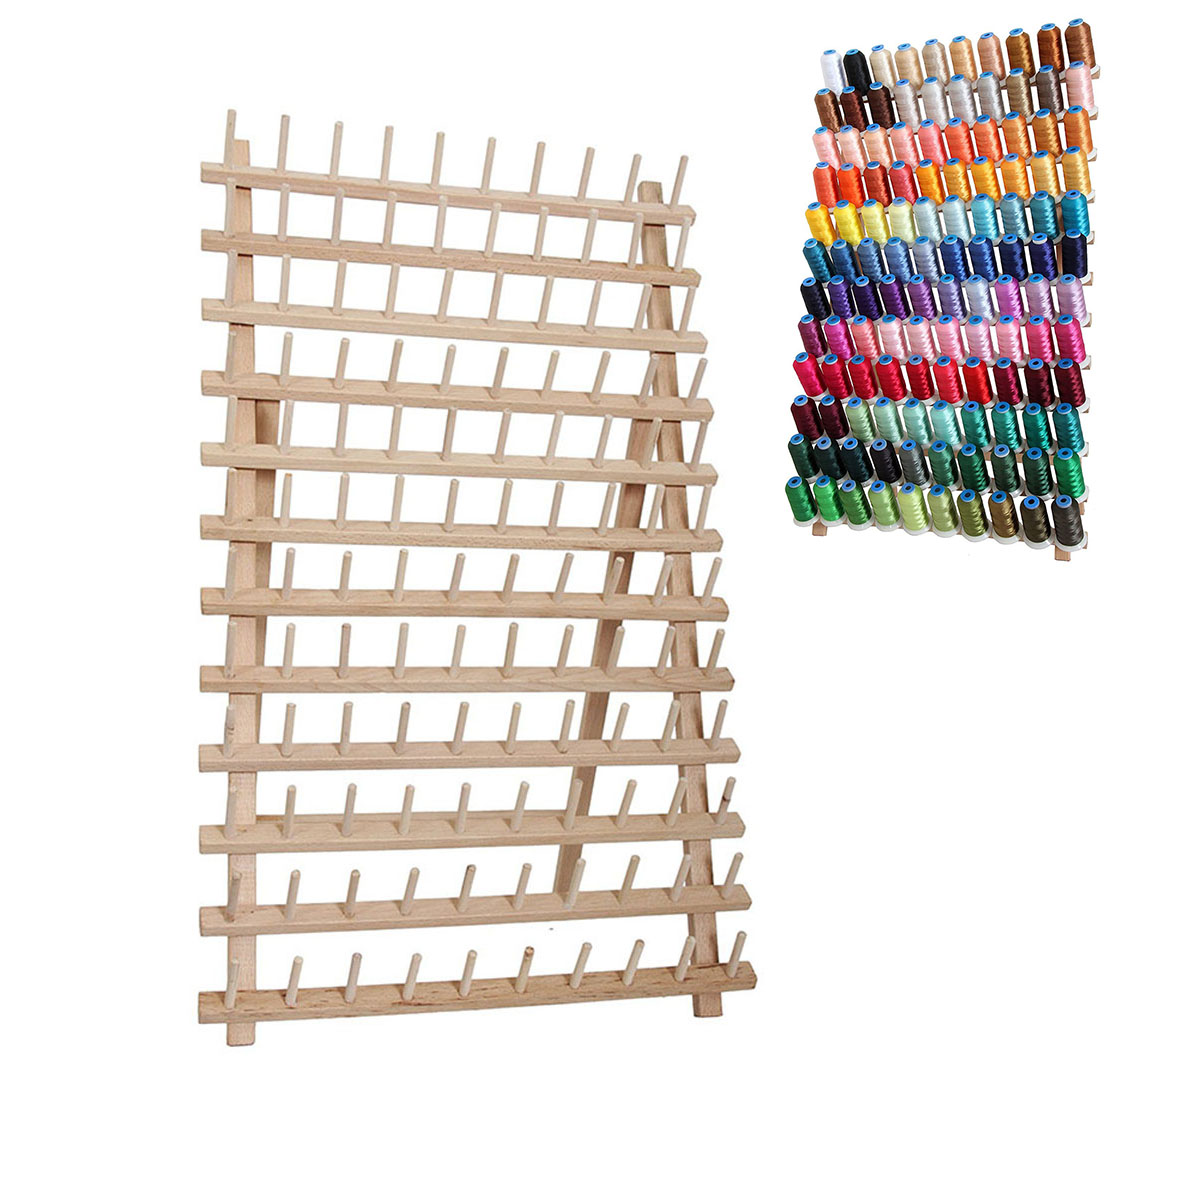 Stand-Rack Holds-Organizer Storage-Holder Embroidery-Machine Spool-Cone Wall-Mount Wood-Thread